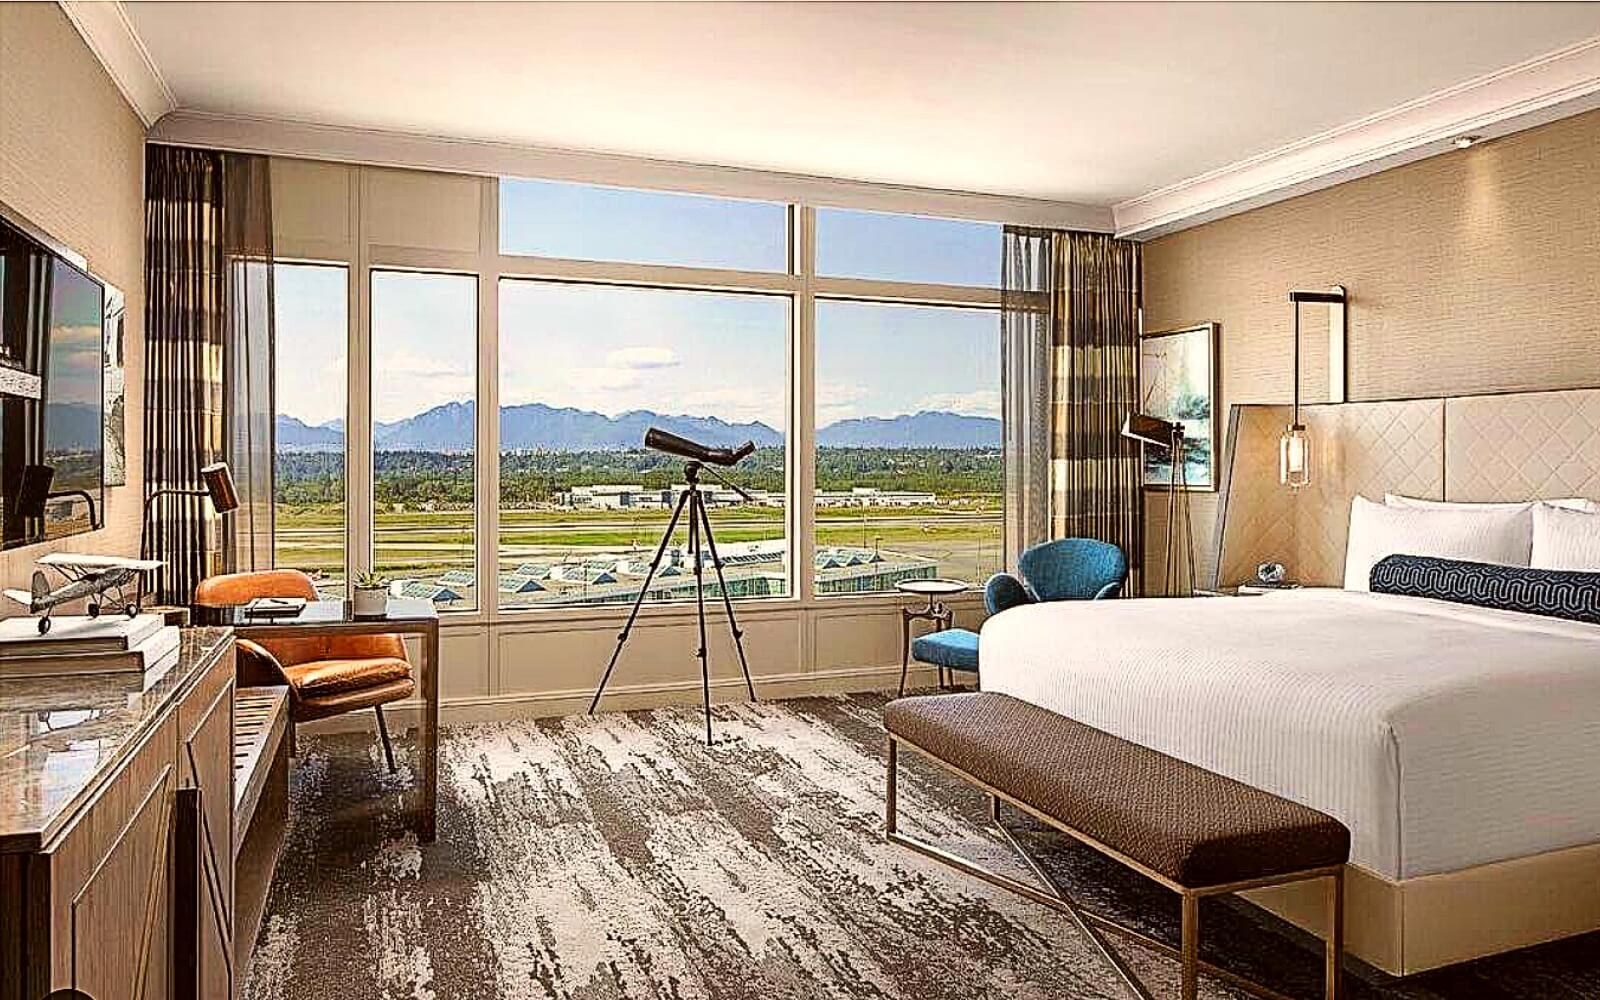 The view from a room at the Fairmont Vancouver Airport